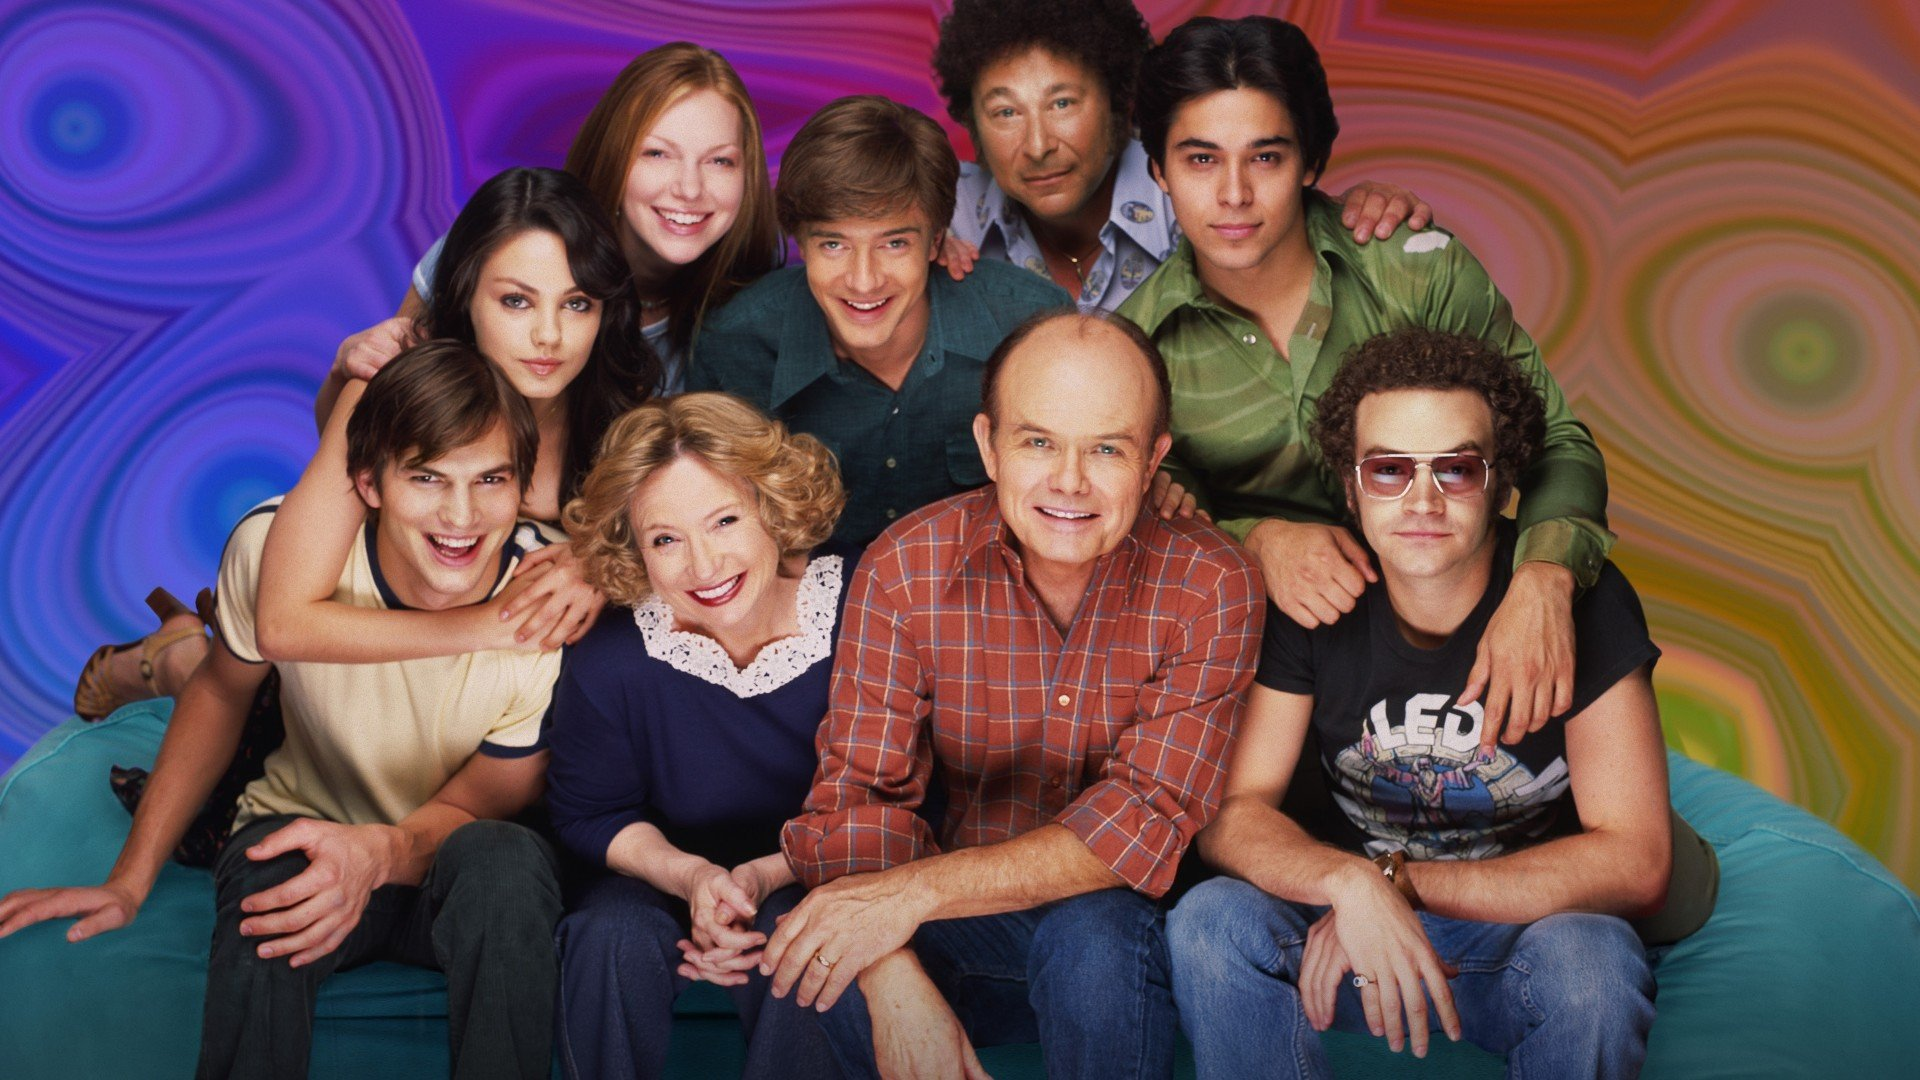 wallpaper-that-70s-show-32444005-1920-1080